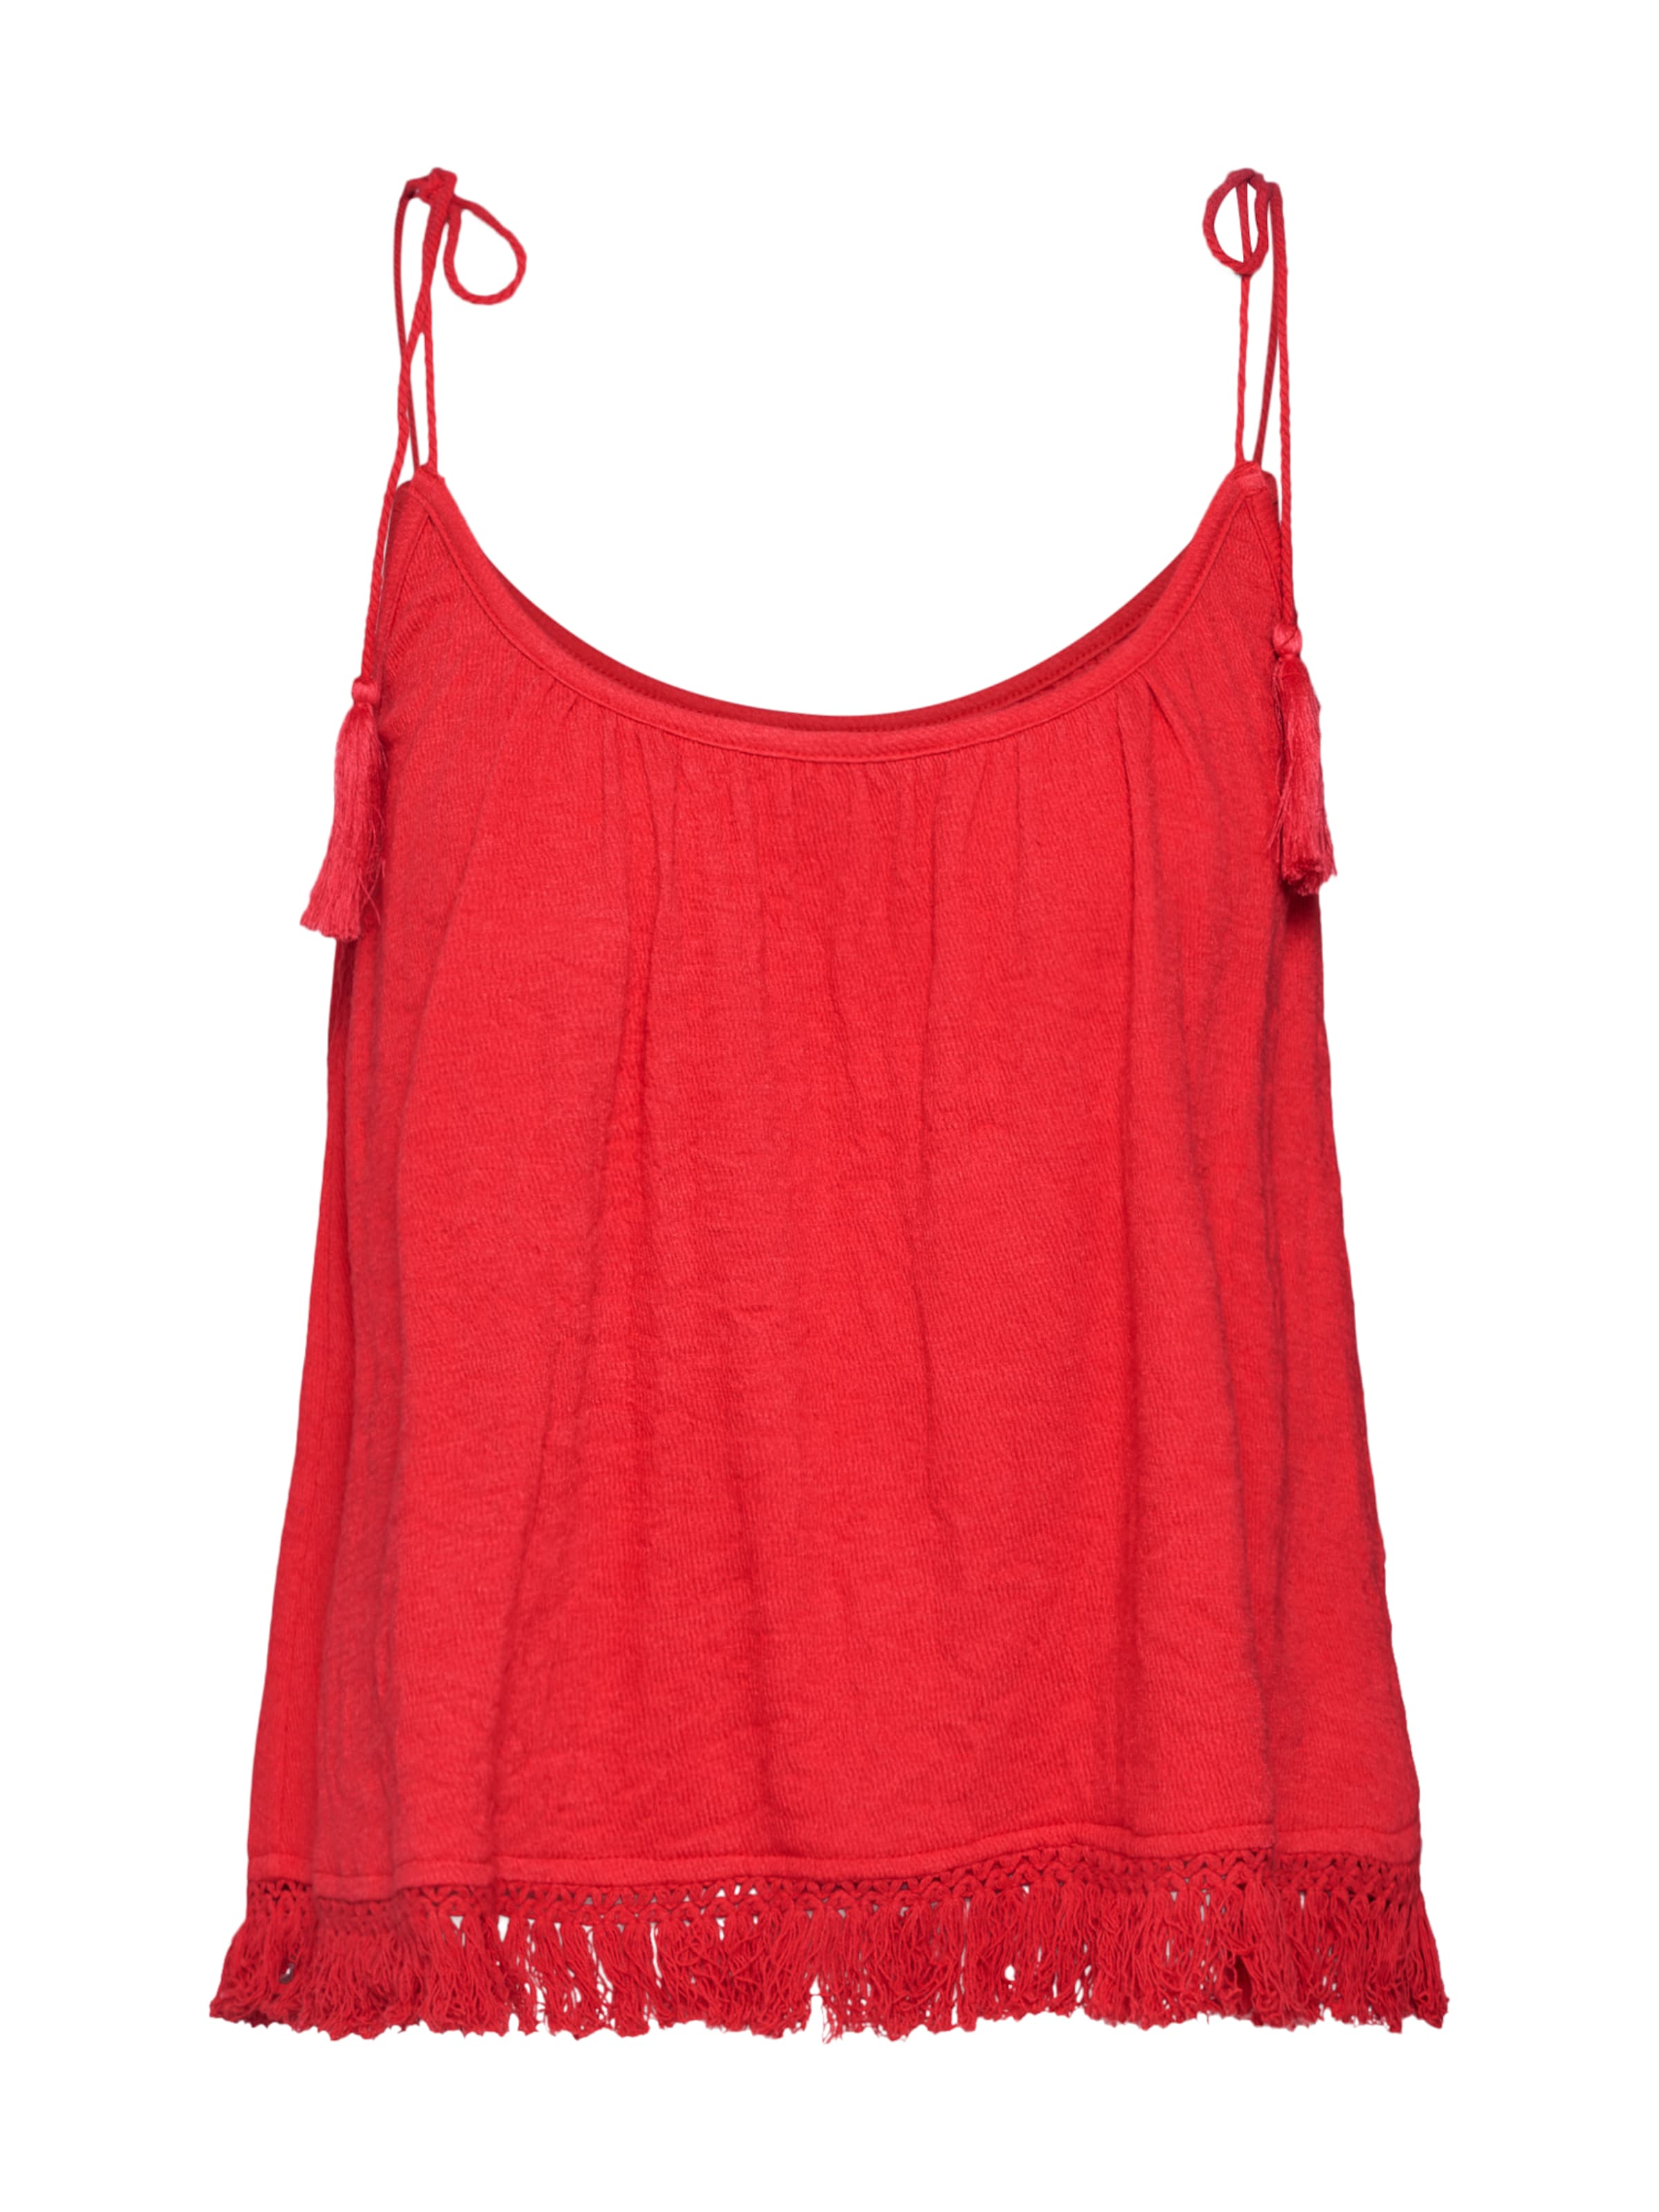 Billabong Up' In Rot Top 'step BerdxCo